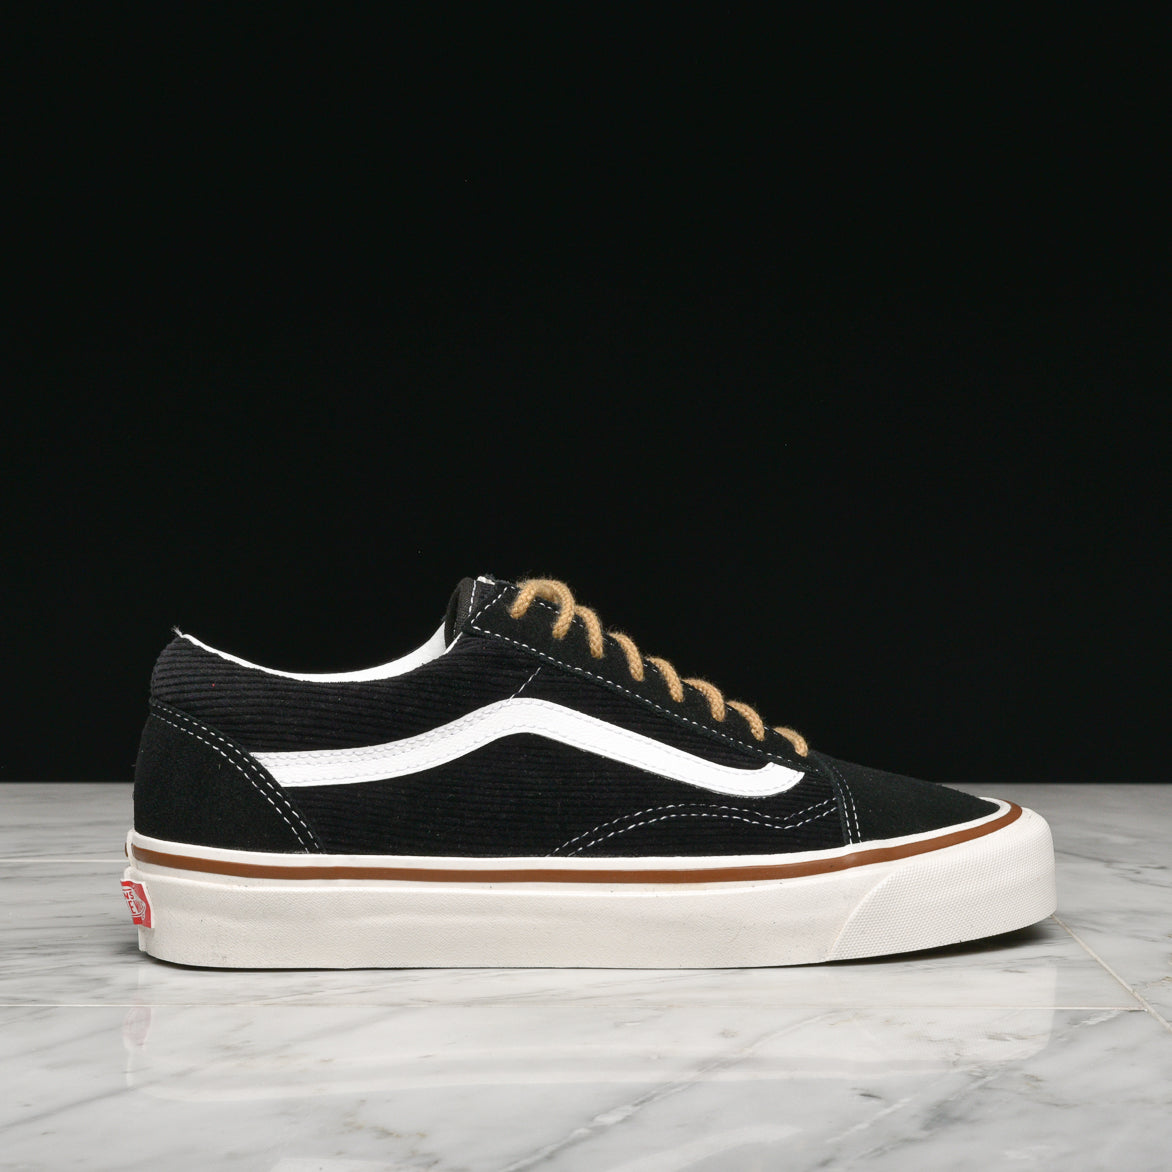 ANAHEIM FACTORY OLD SKOOL 36 DX - OG BLACK   WHITE ... 4442a4f0432c